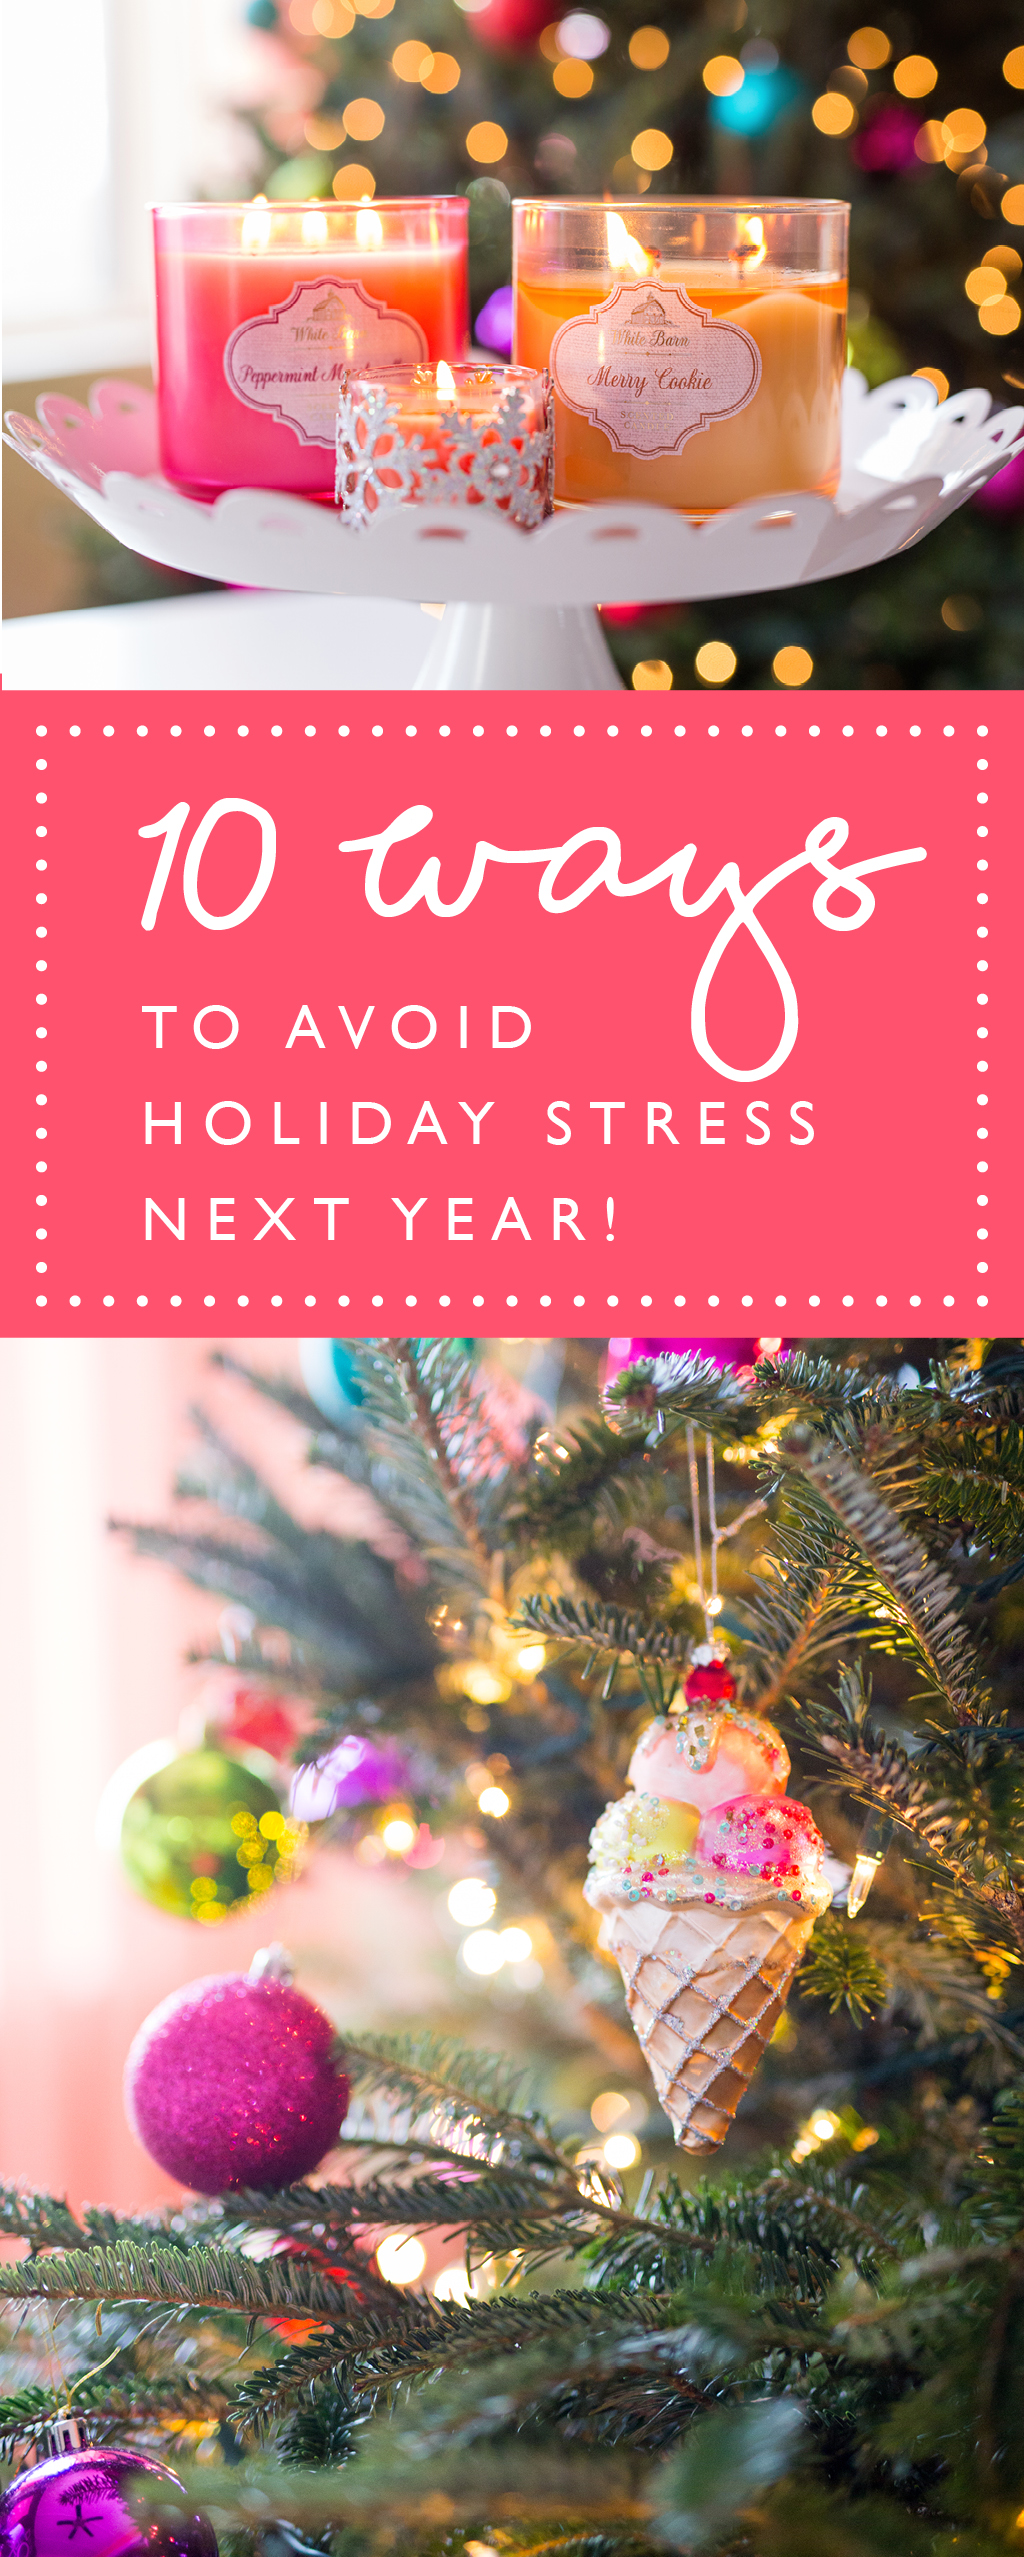 10 ways to conquer holiday stress and have more time to watch Elf next year! Let's do this, 2017! www.kateLphotography.com